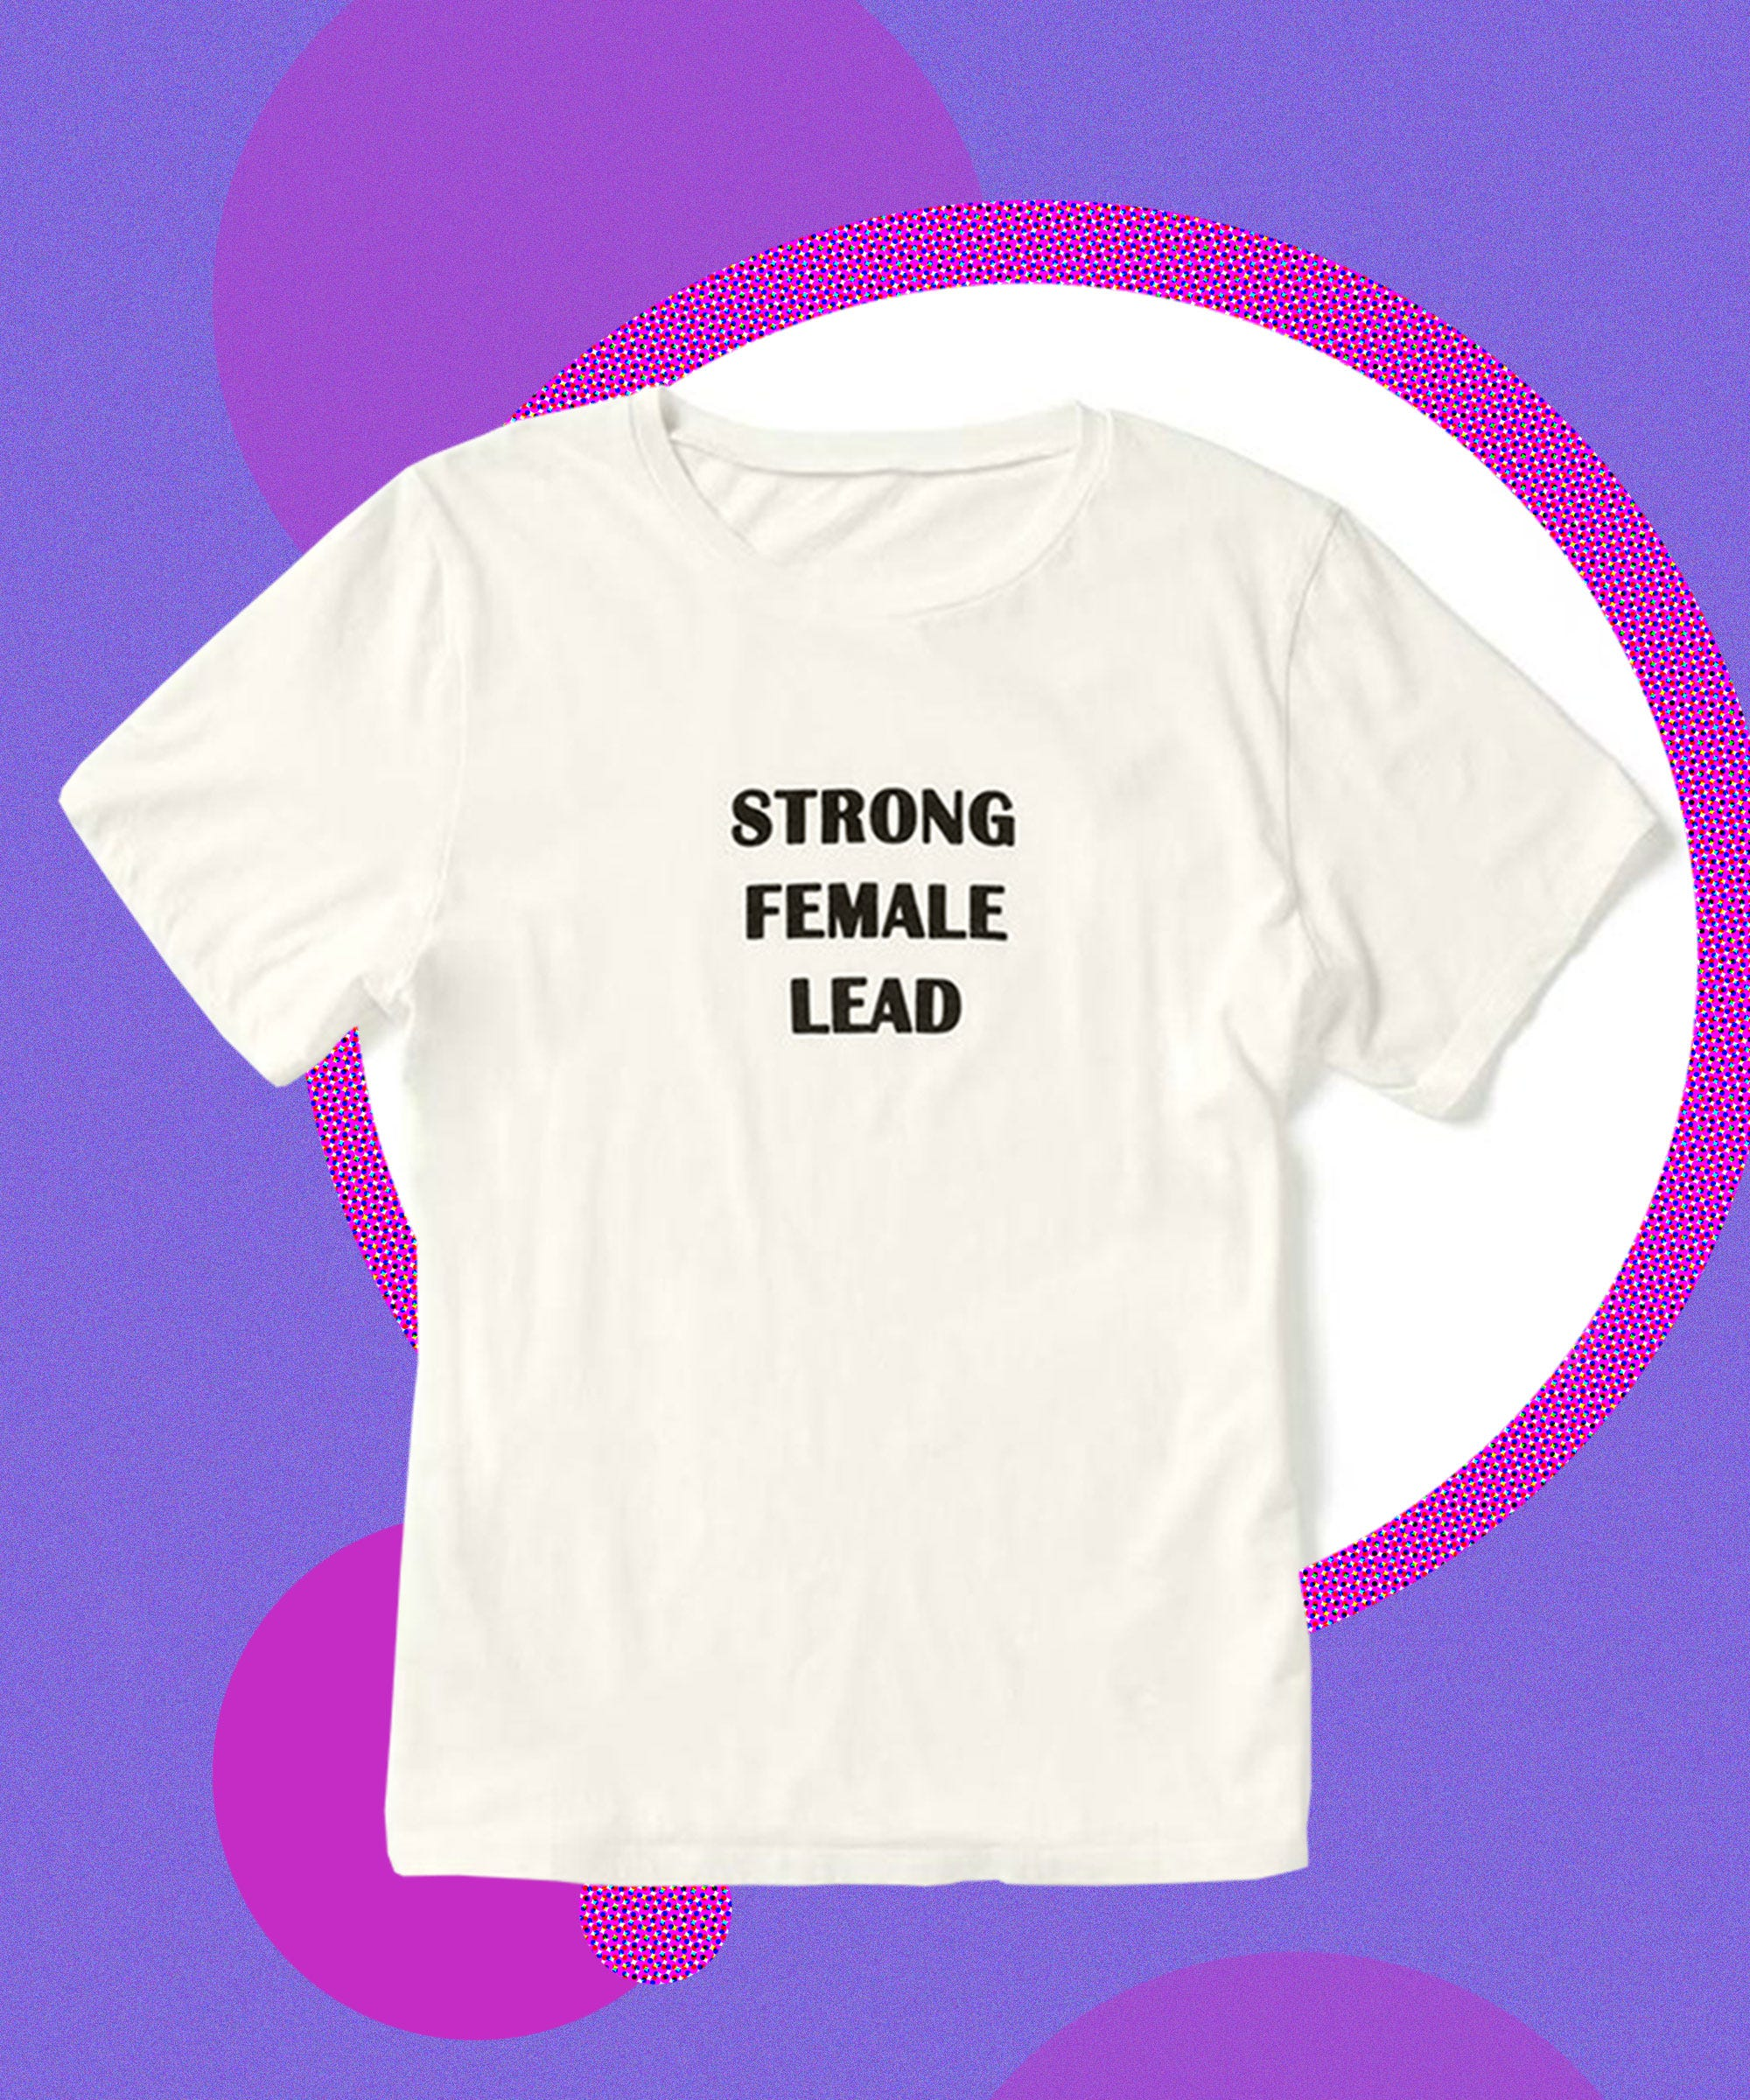 Mark International Women's Day With One Of These Feminist Tees